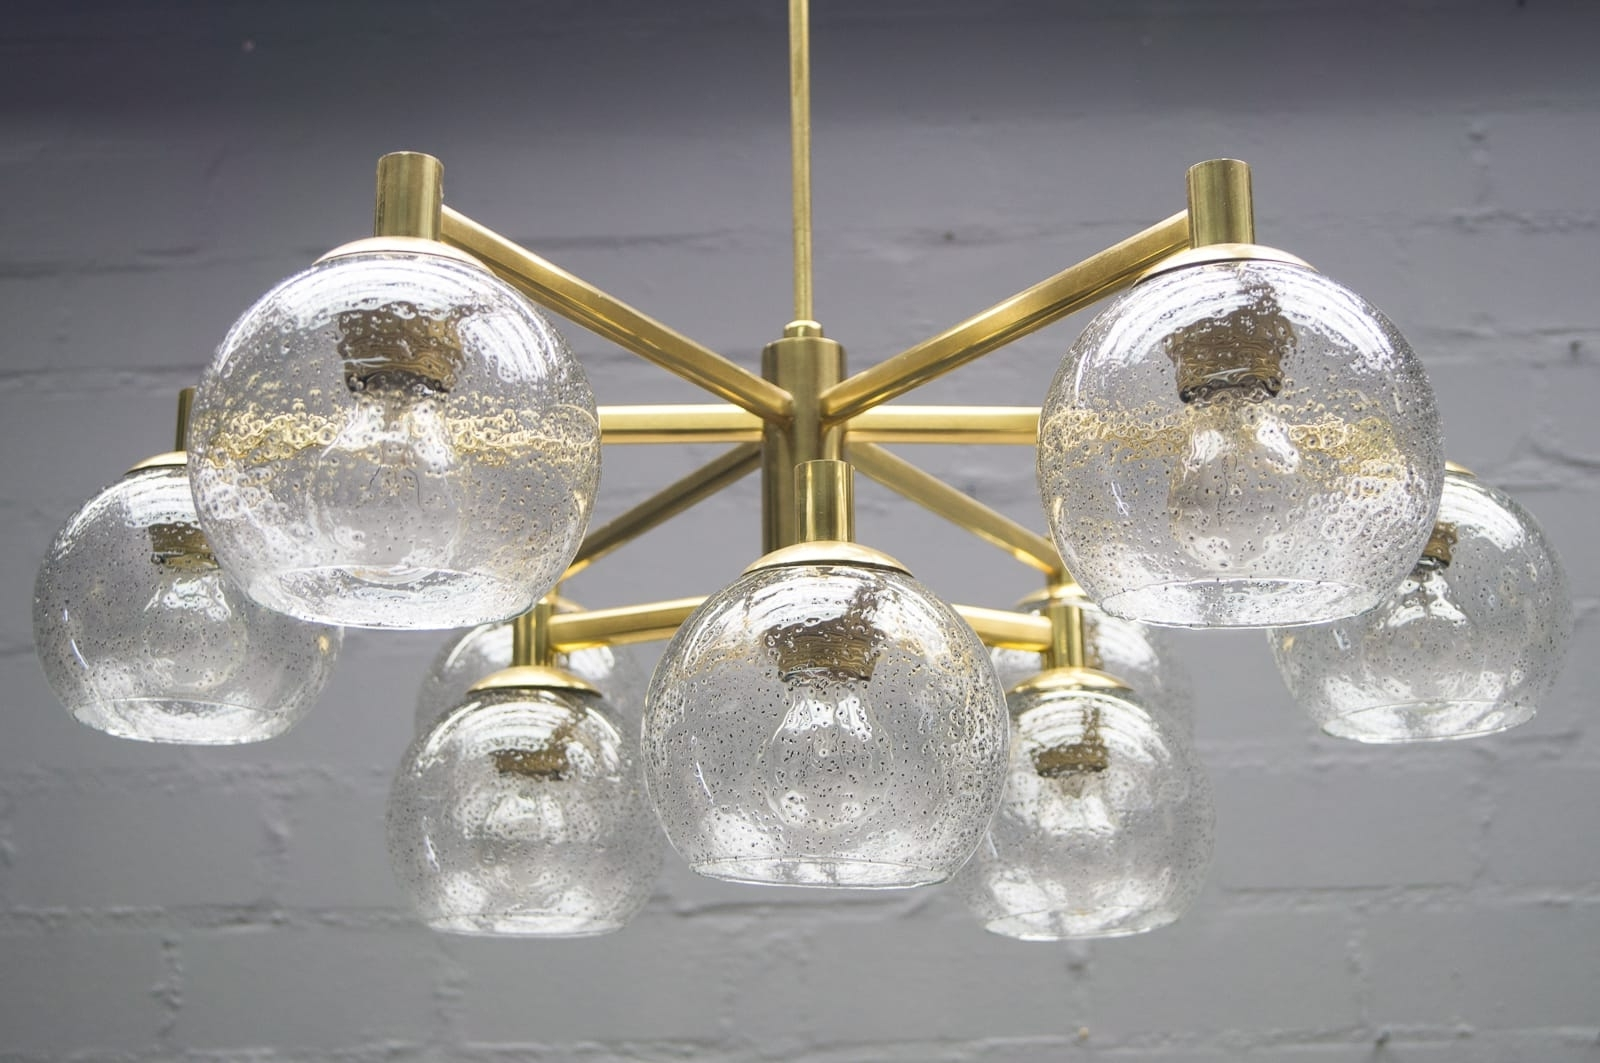 Brass Vintage Chandelier With Nine Glass Spheres, 1960S For Sale At Inside Trendy Vintage Chandelier (View 6 of 15)